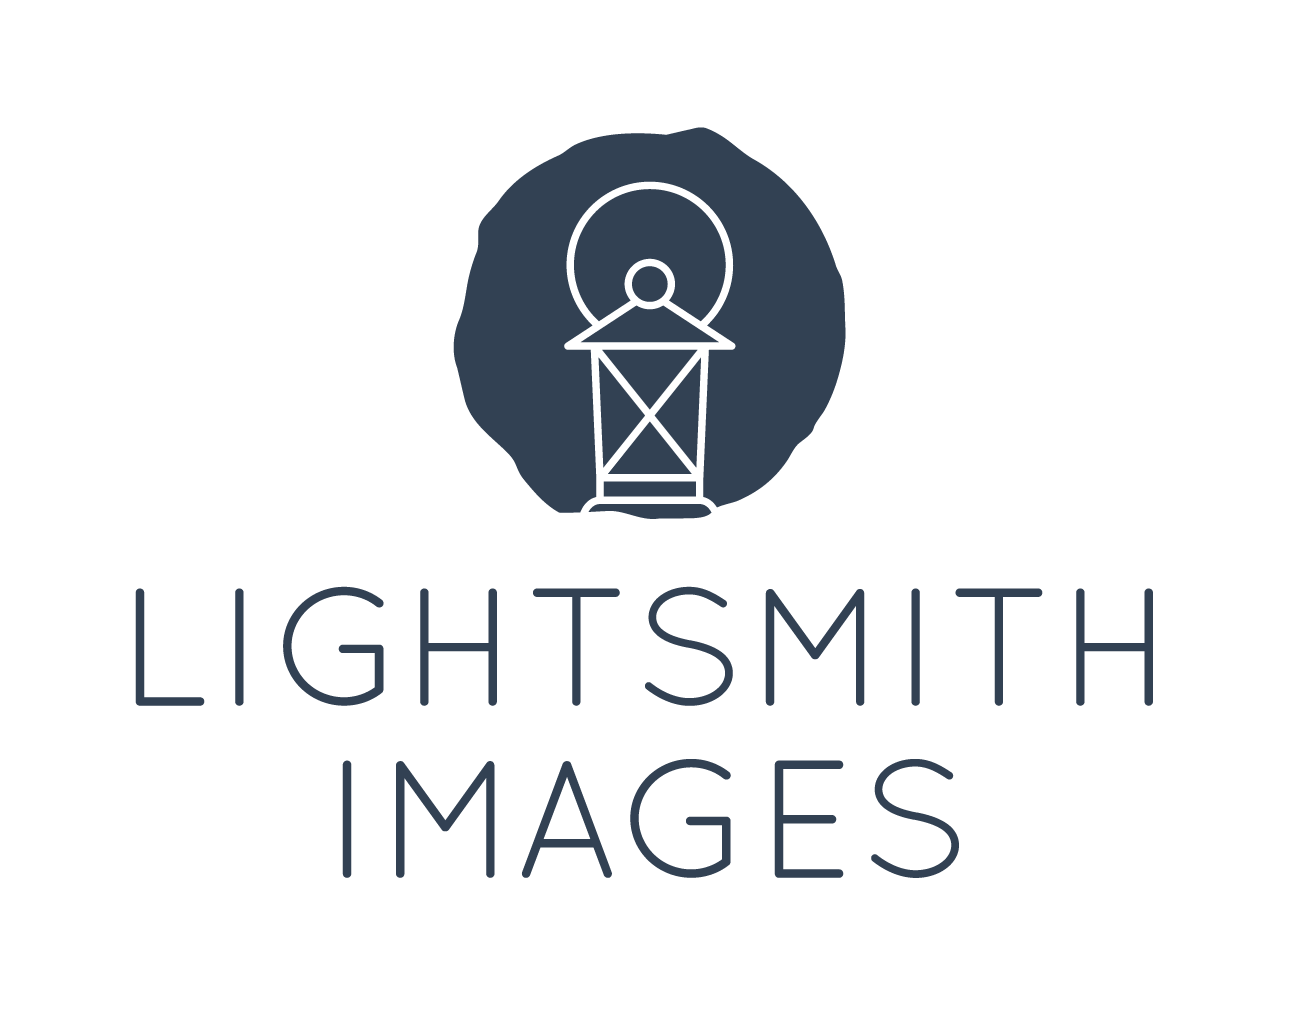 brisbane wedding photographer family photography lightsmith images logo.png